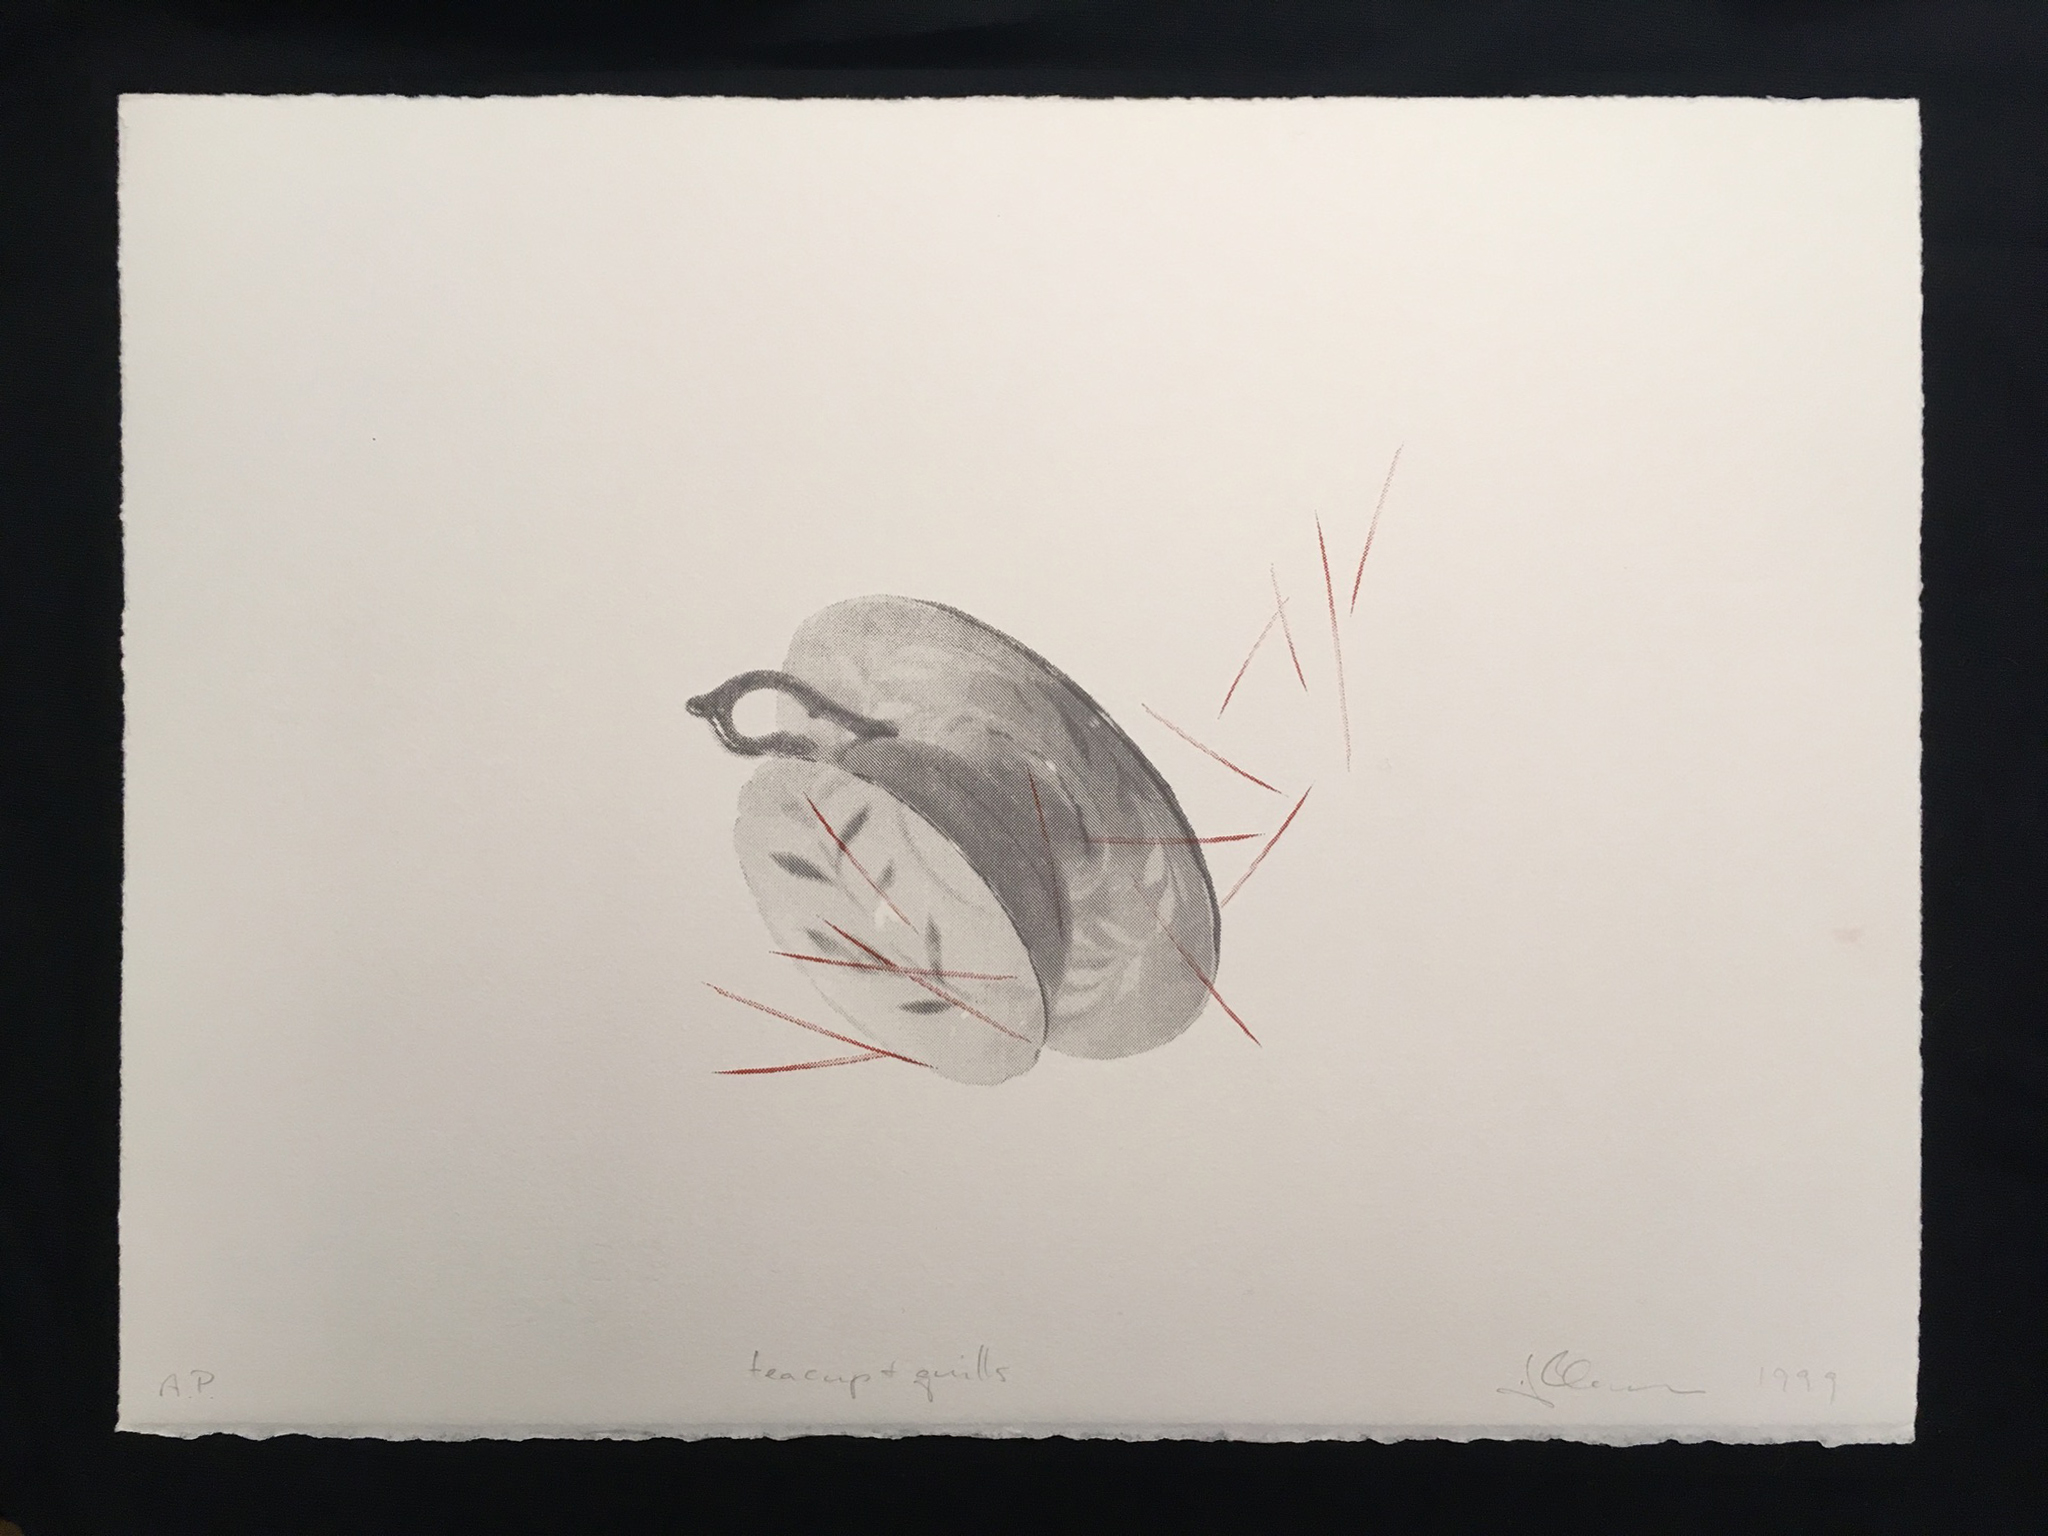 Hannah Claus, teacup and quills, screenprint on paper, 1999.  Auction item for Gabriel Family Fundraiser